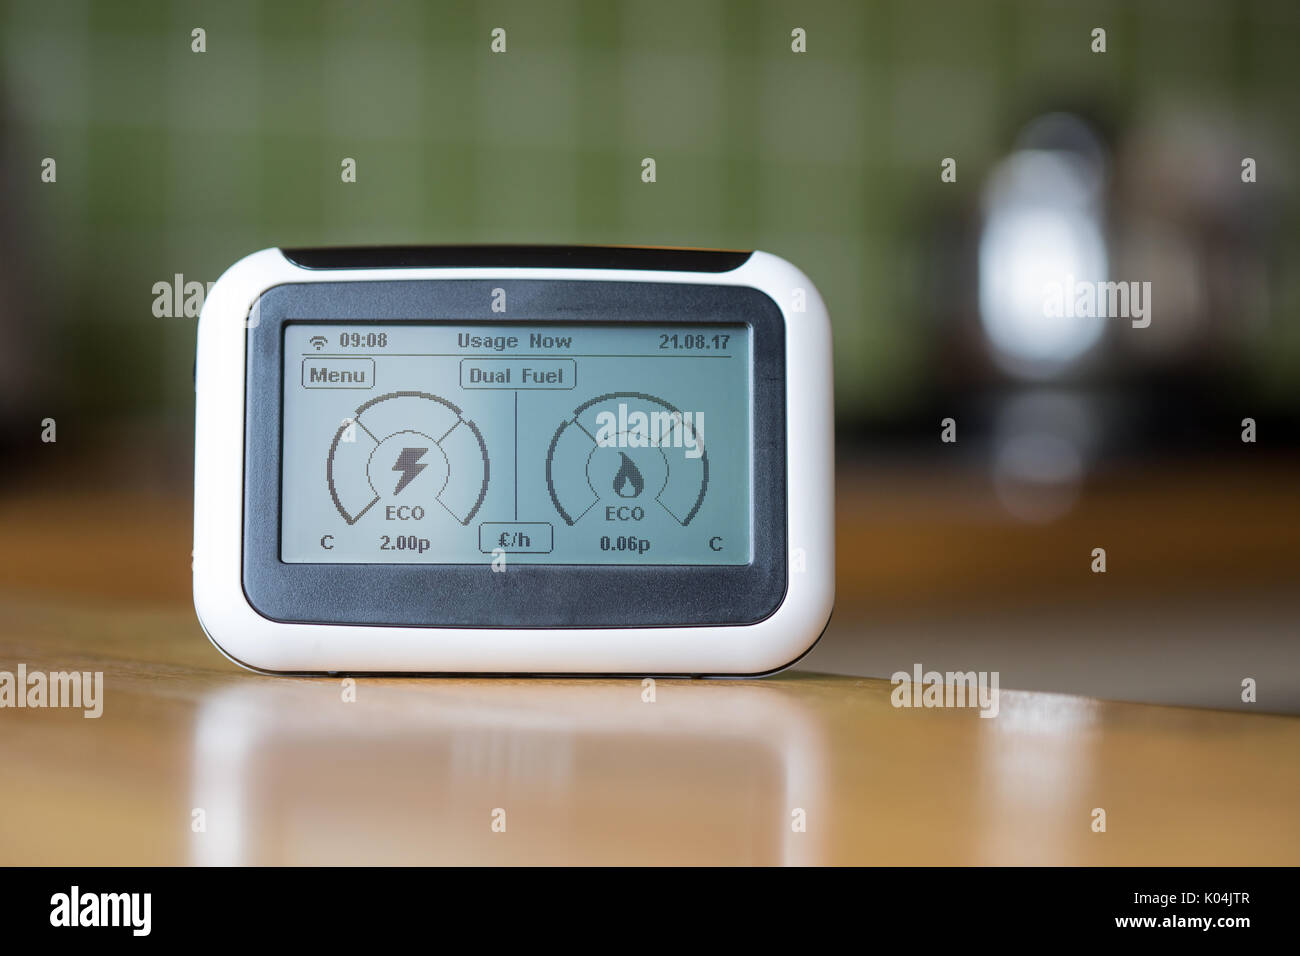 Domestic Energy Smart Meter on a Kitchen Worktop Displaying Electricity and Gas Usage in Real Time - Stock Image